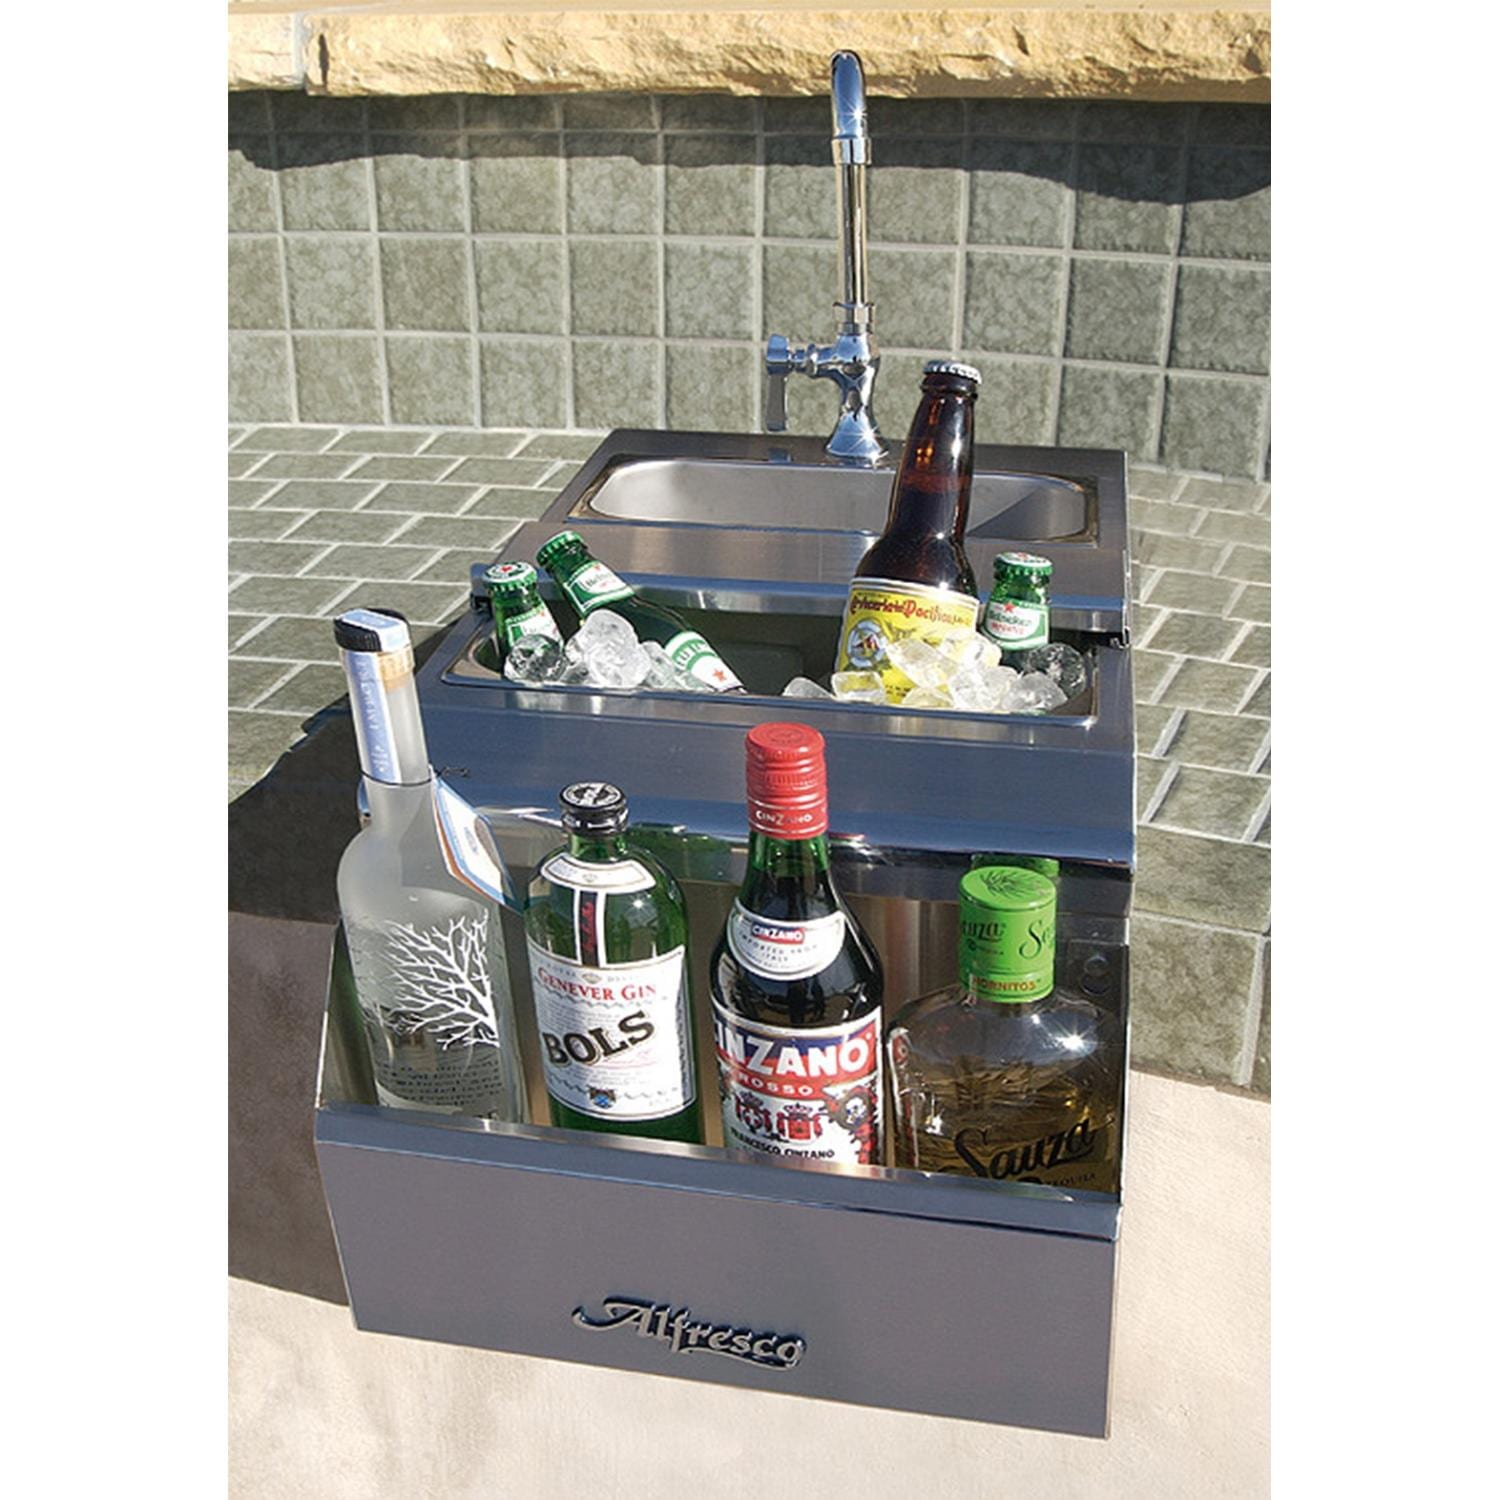 Alfresco 14-Inch Bartender Center Plus Sink